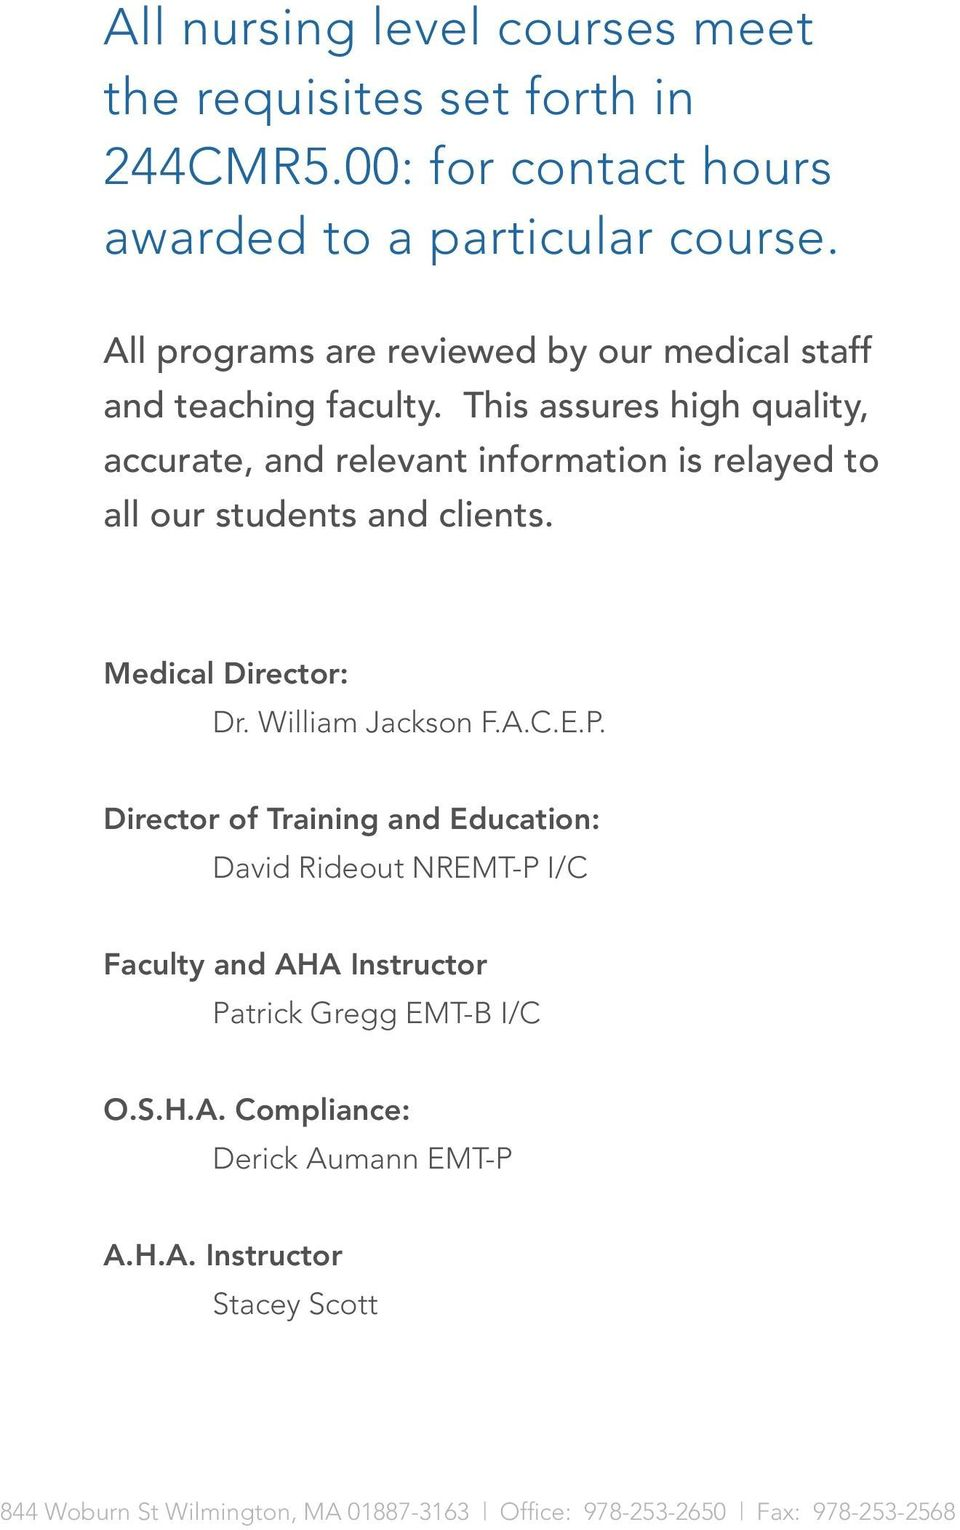 This assures high quality, accurate, and relevant information is relayed to all our students and clients. Medical Director: Dr. William Jackson F.A.C.E.